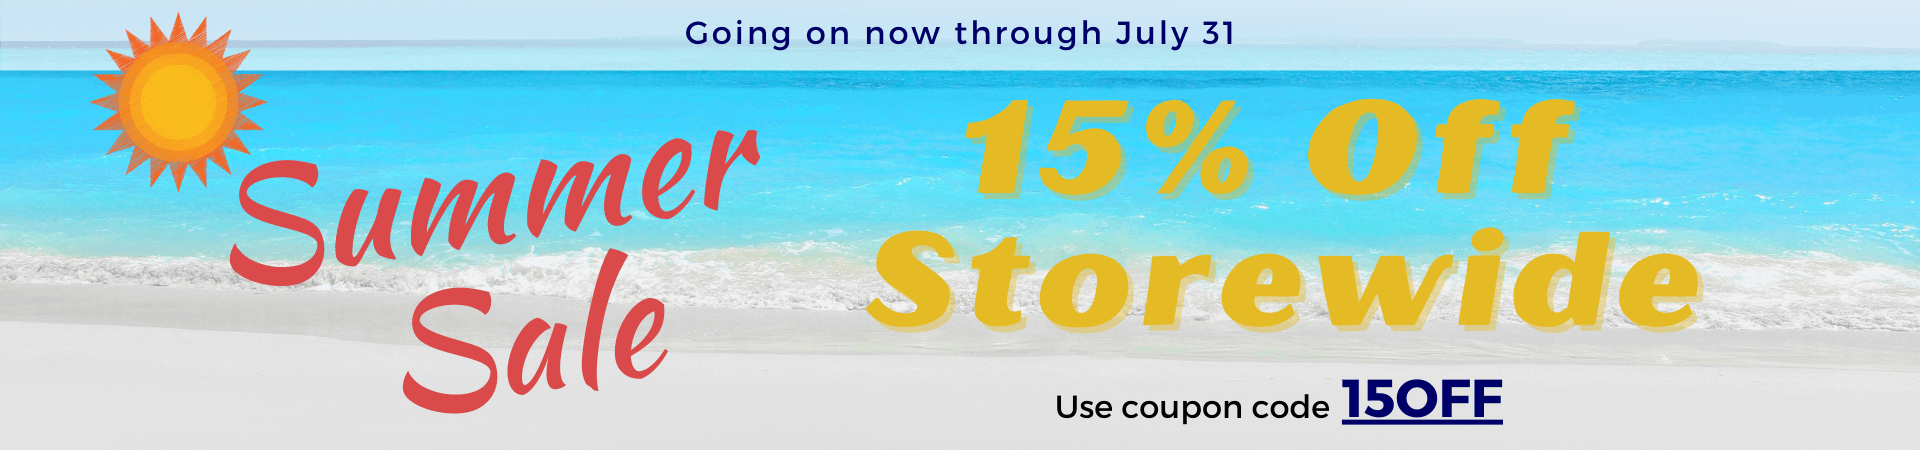 Save 15% off storewide with coupon code 15OFF through the end of July